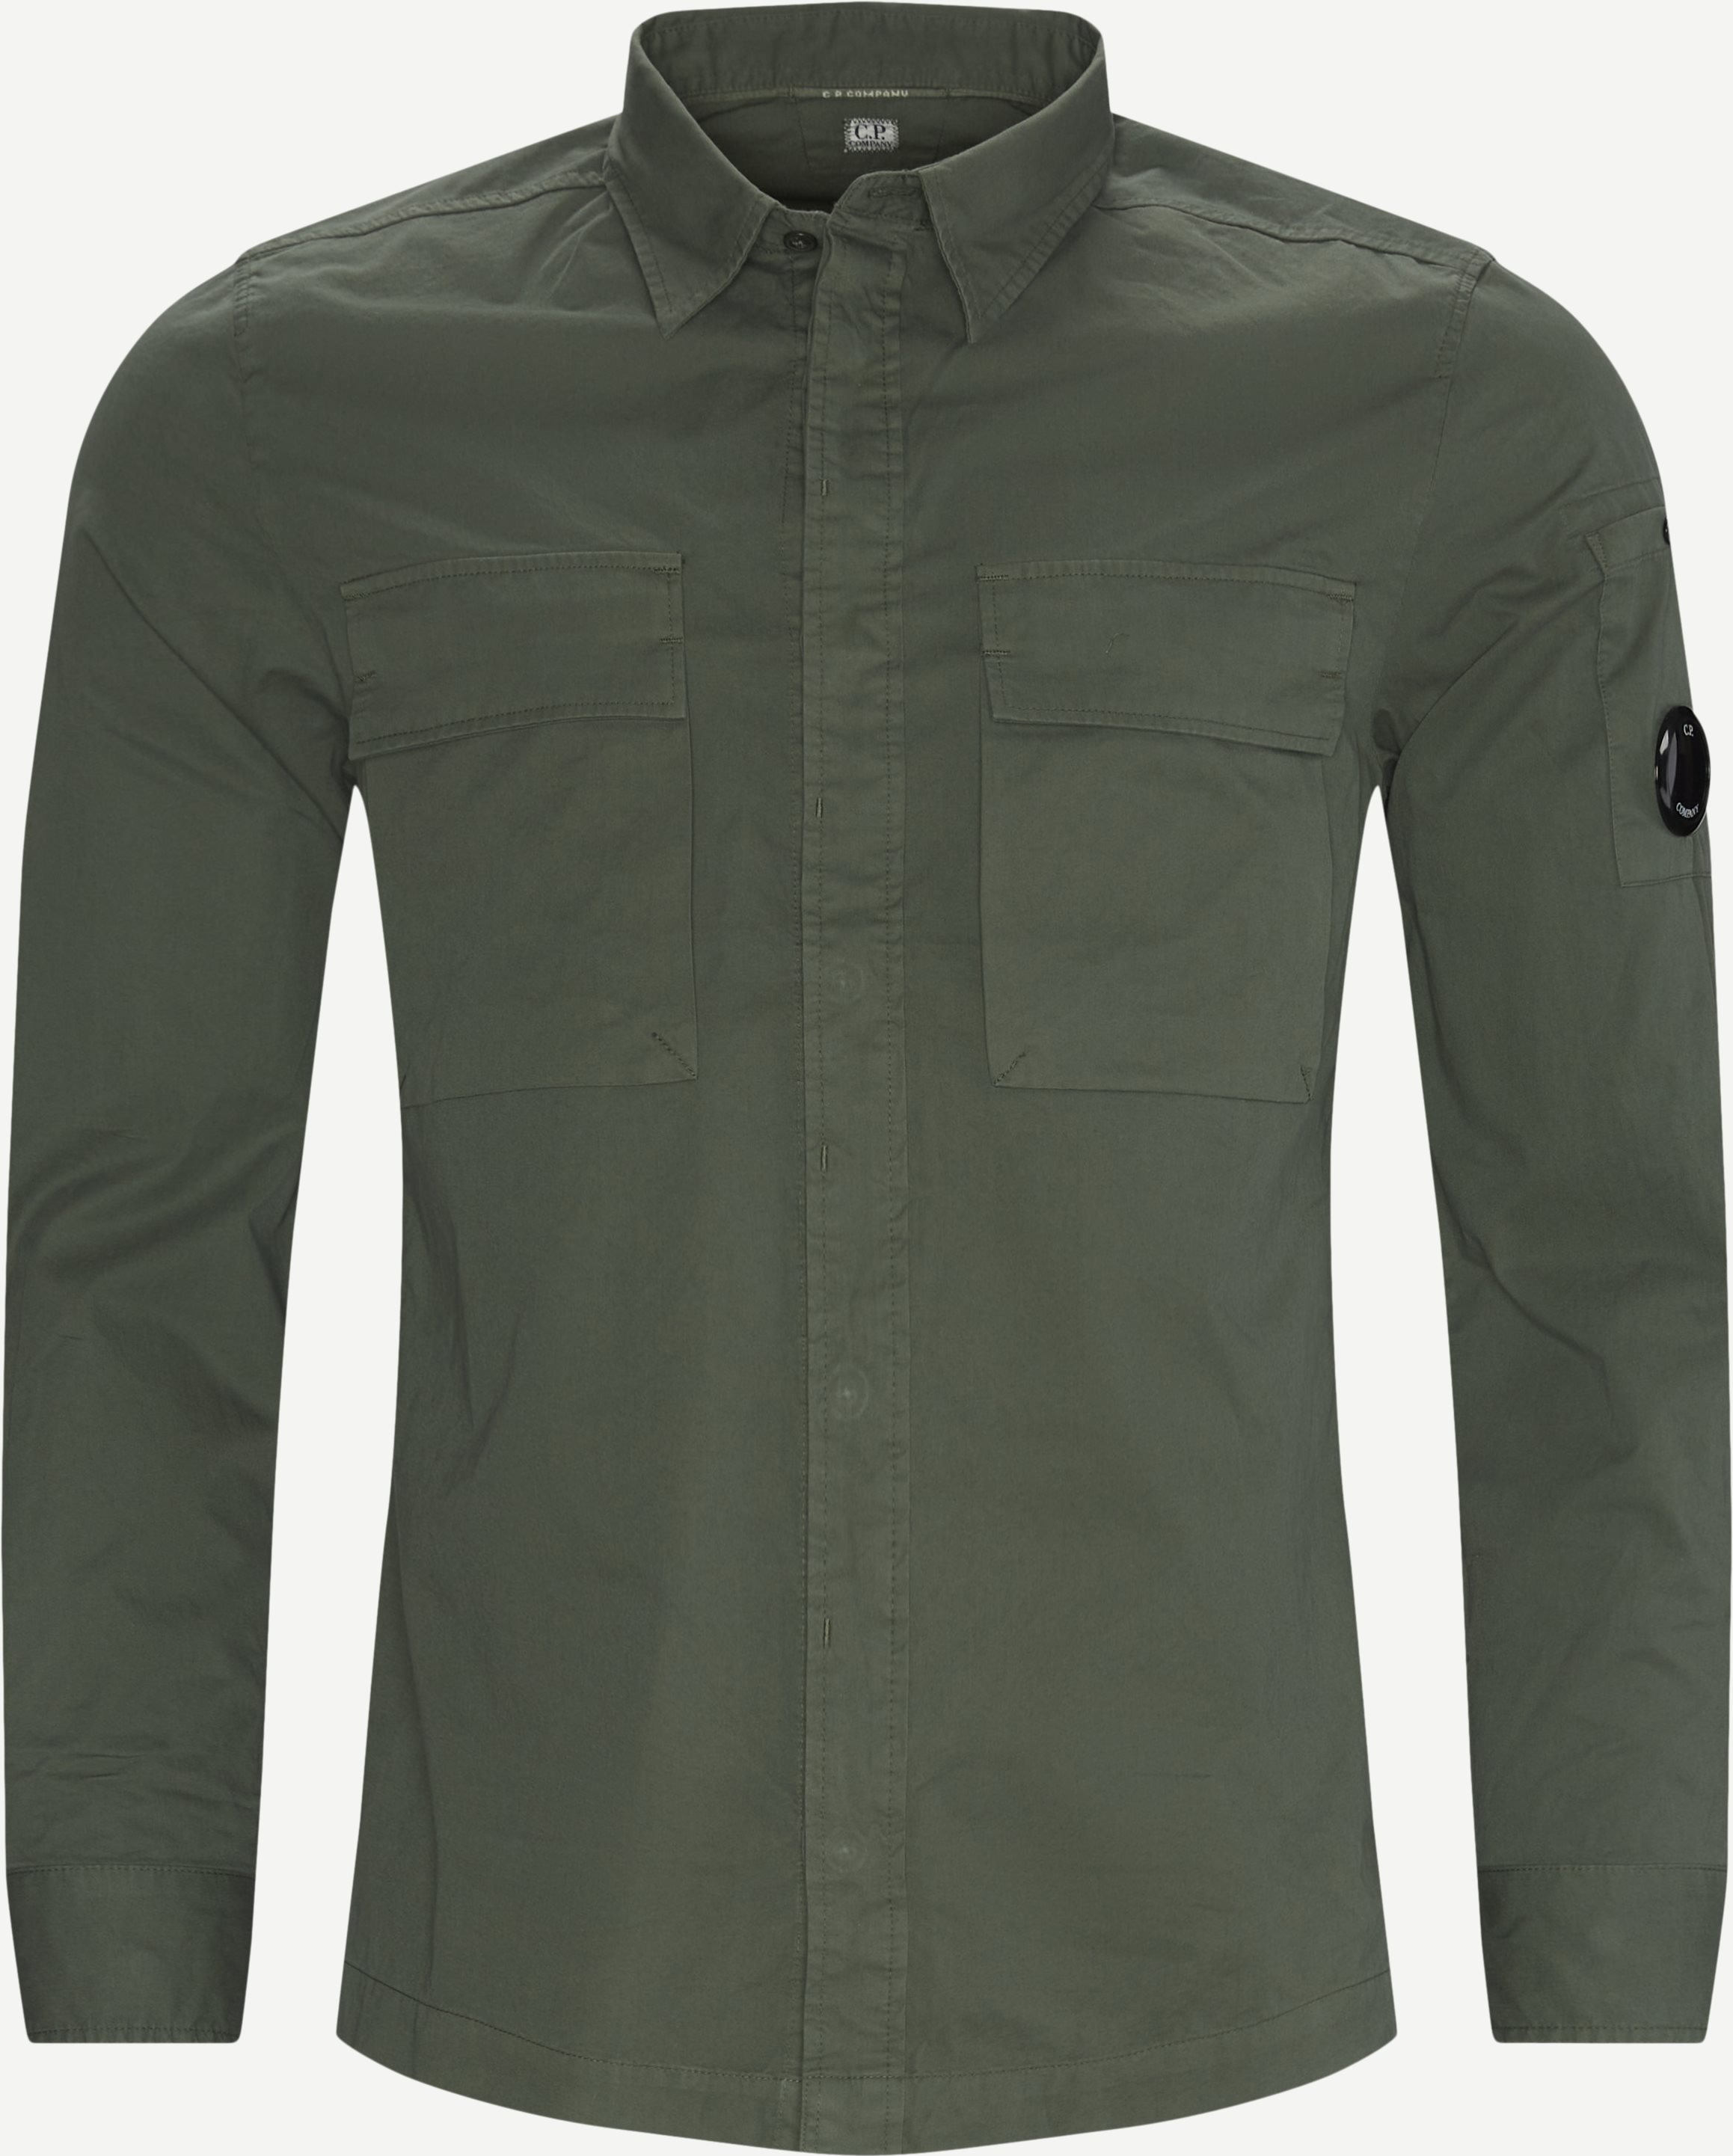 Emerized Gabardine Garment Dyed Shirt - Skjortor - Regular - Grön